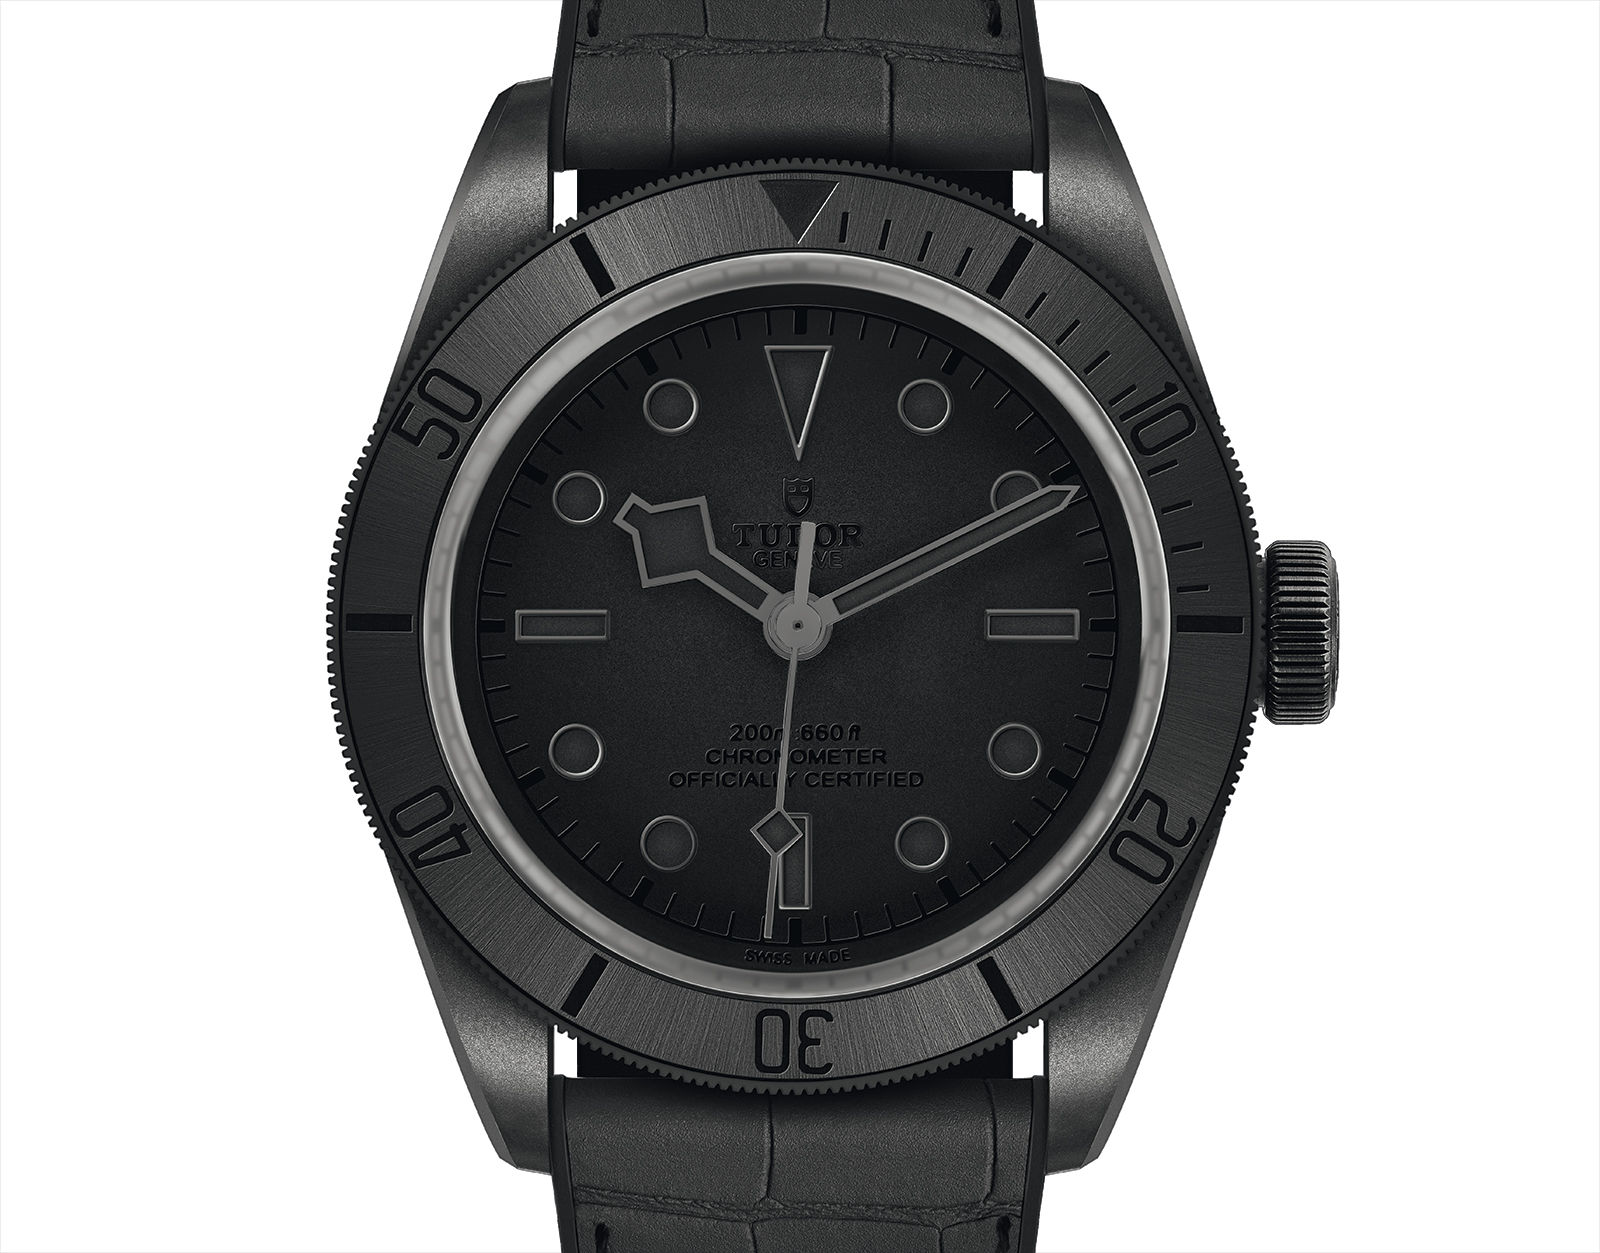 Tudor Black Bay Ceramic One only watch 3